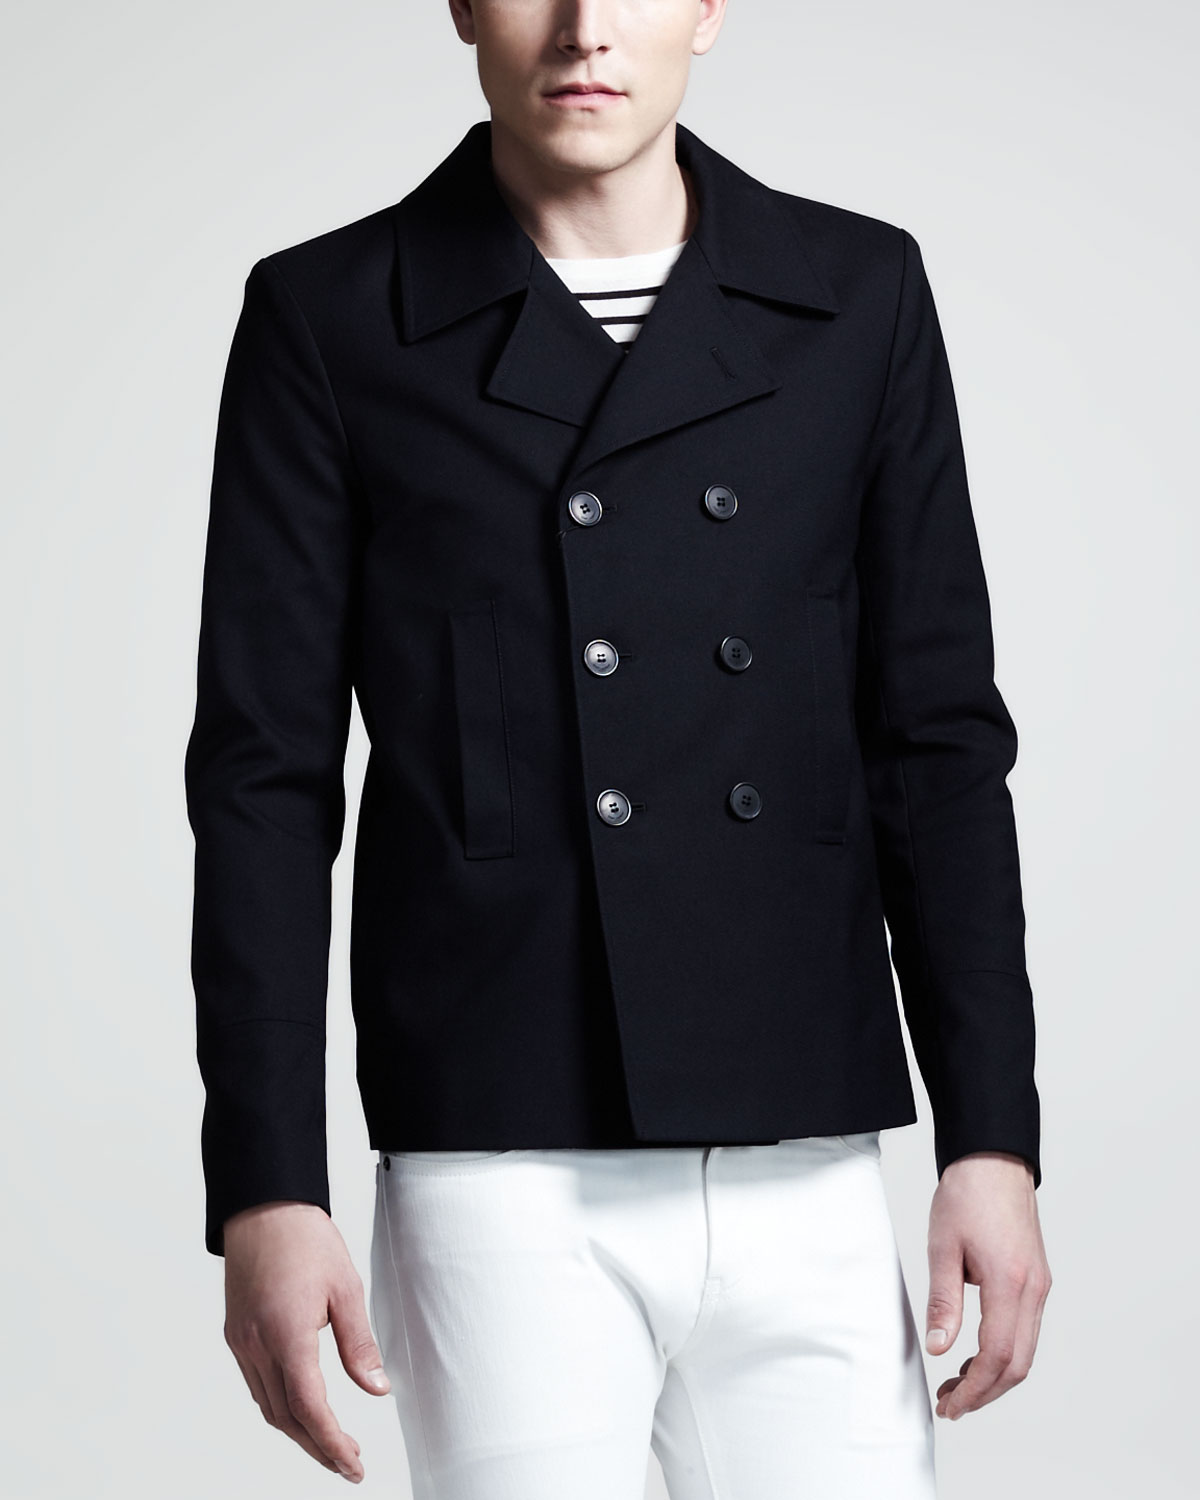 Saint laurent Mens Short Pea Coat in Black for Men | Lyst